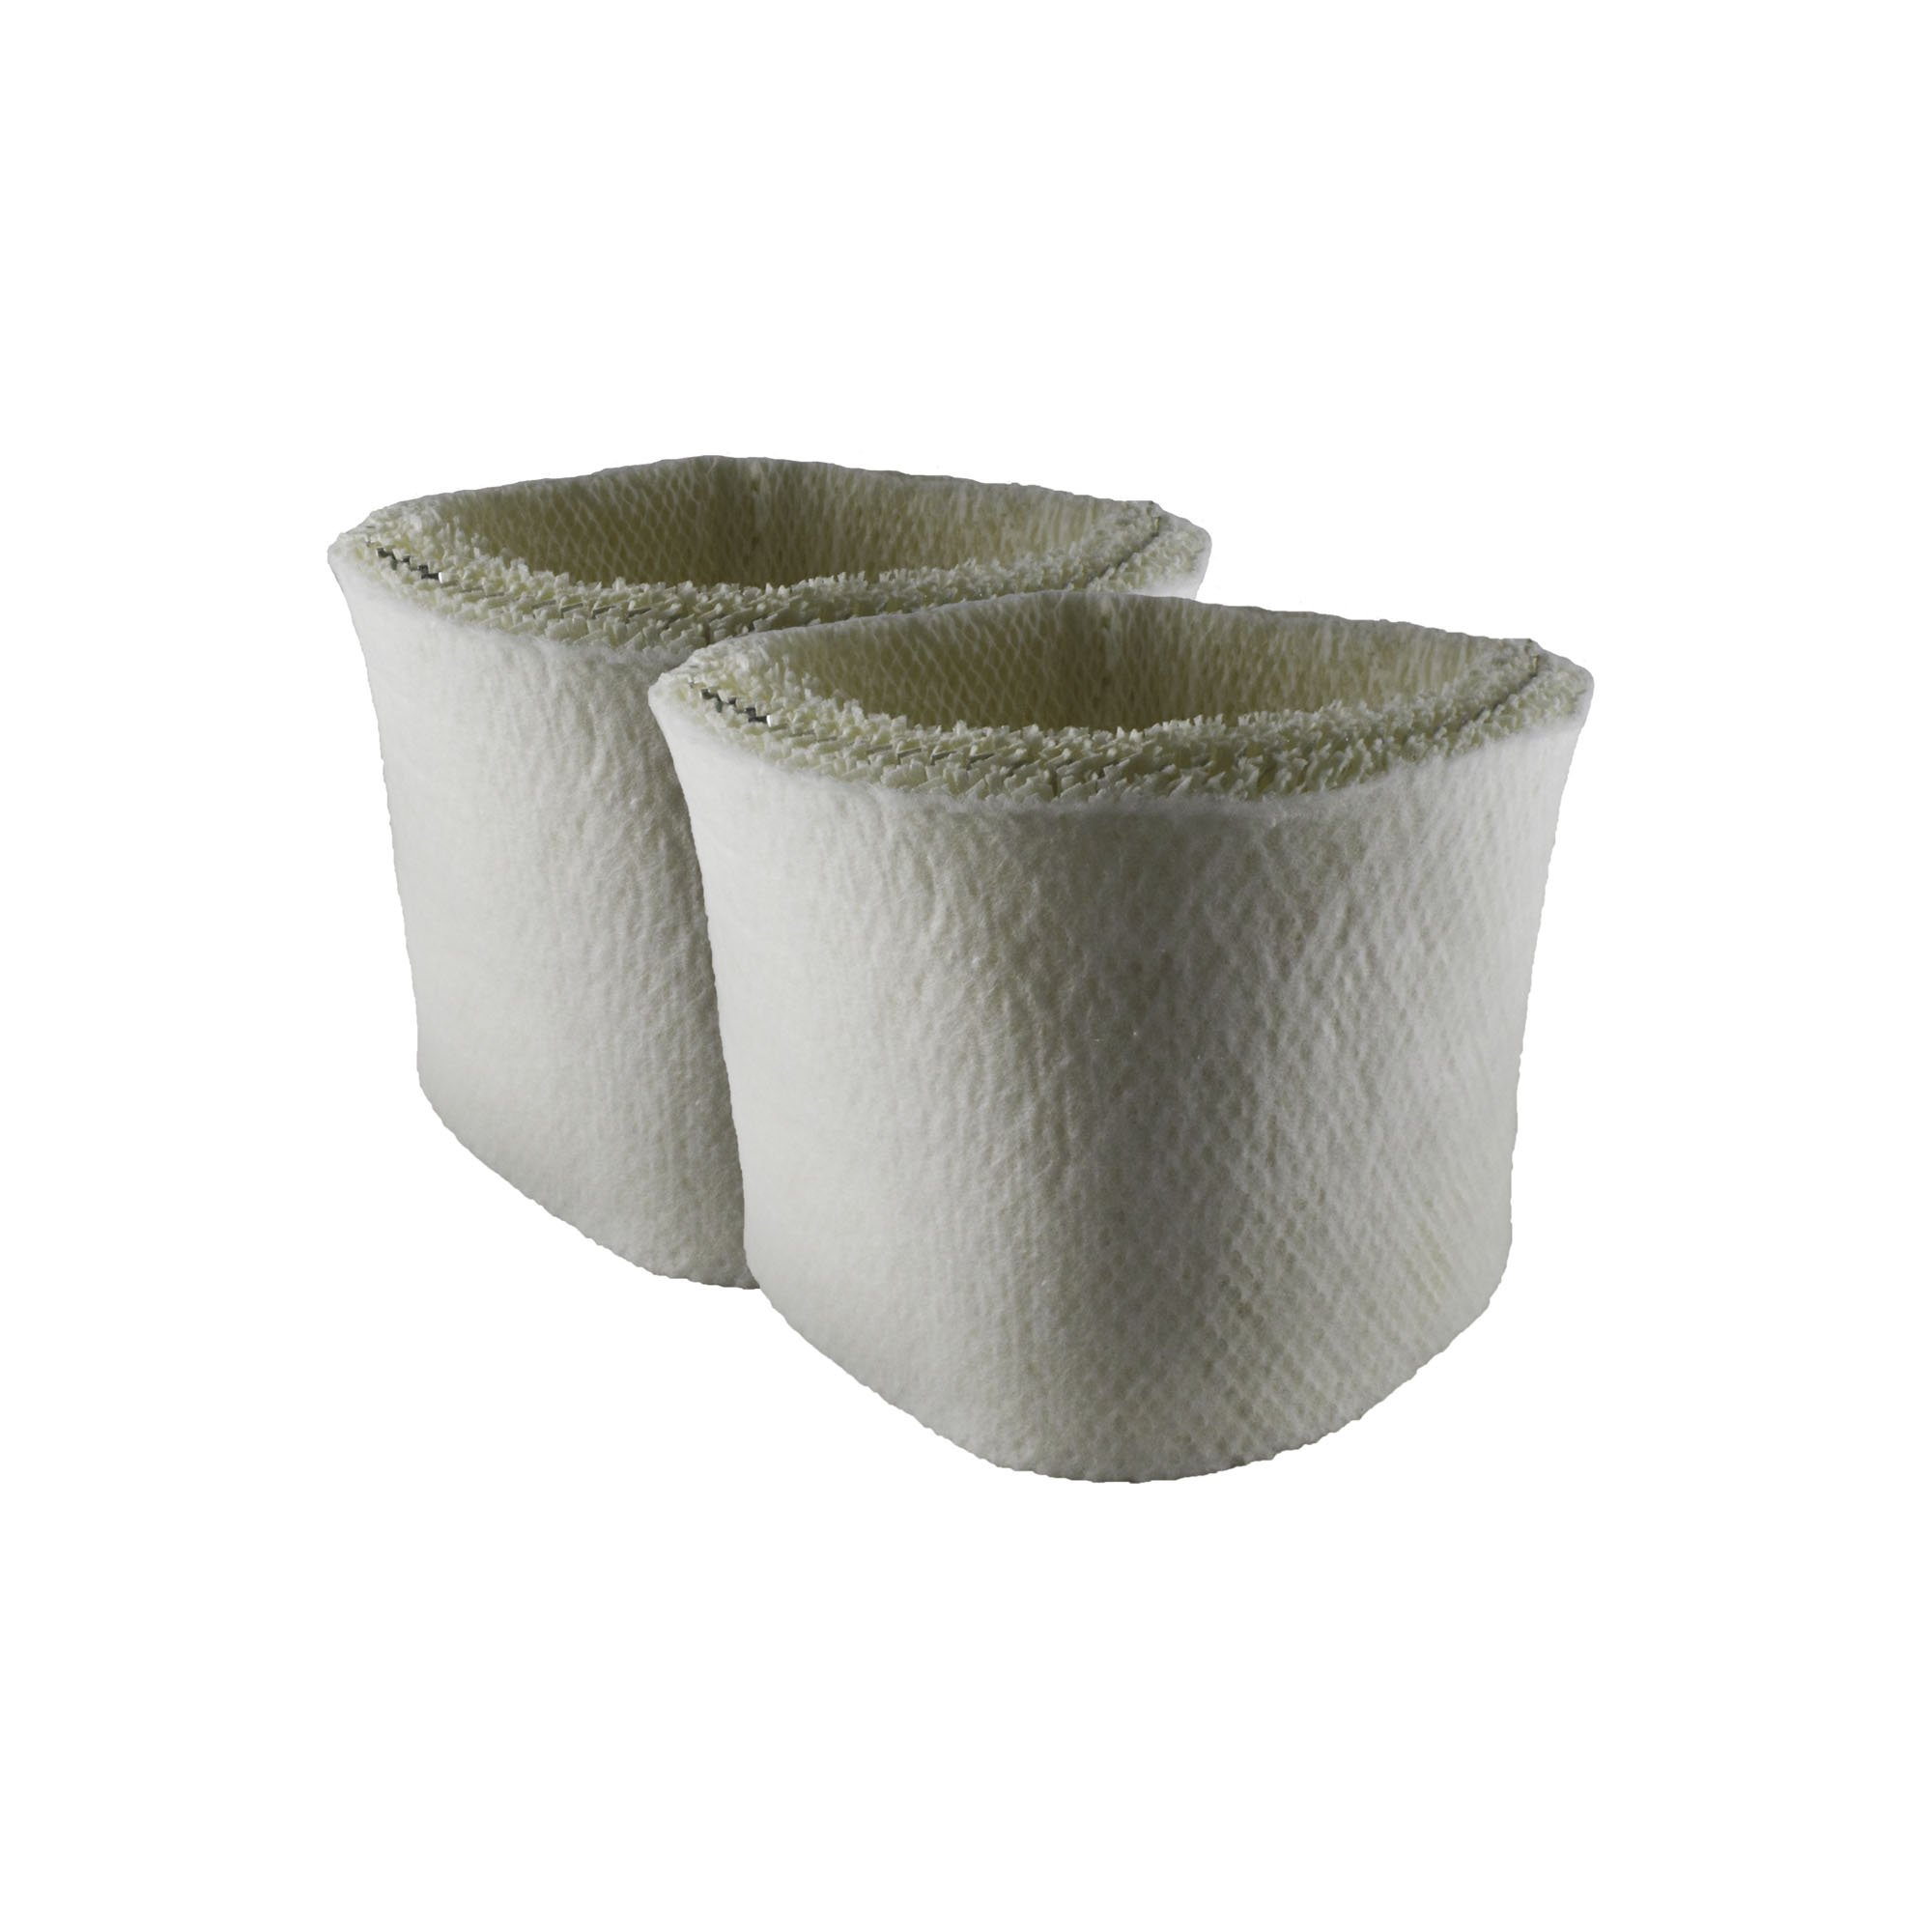 Air Filter Factory 2-PACK Compatible Replacement For Honeywell HCM6011i, HCM-6011i, HCM6011WW, HCM-6011WW Humidifier Filter